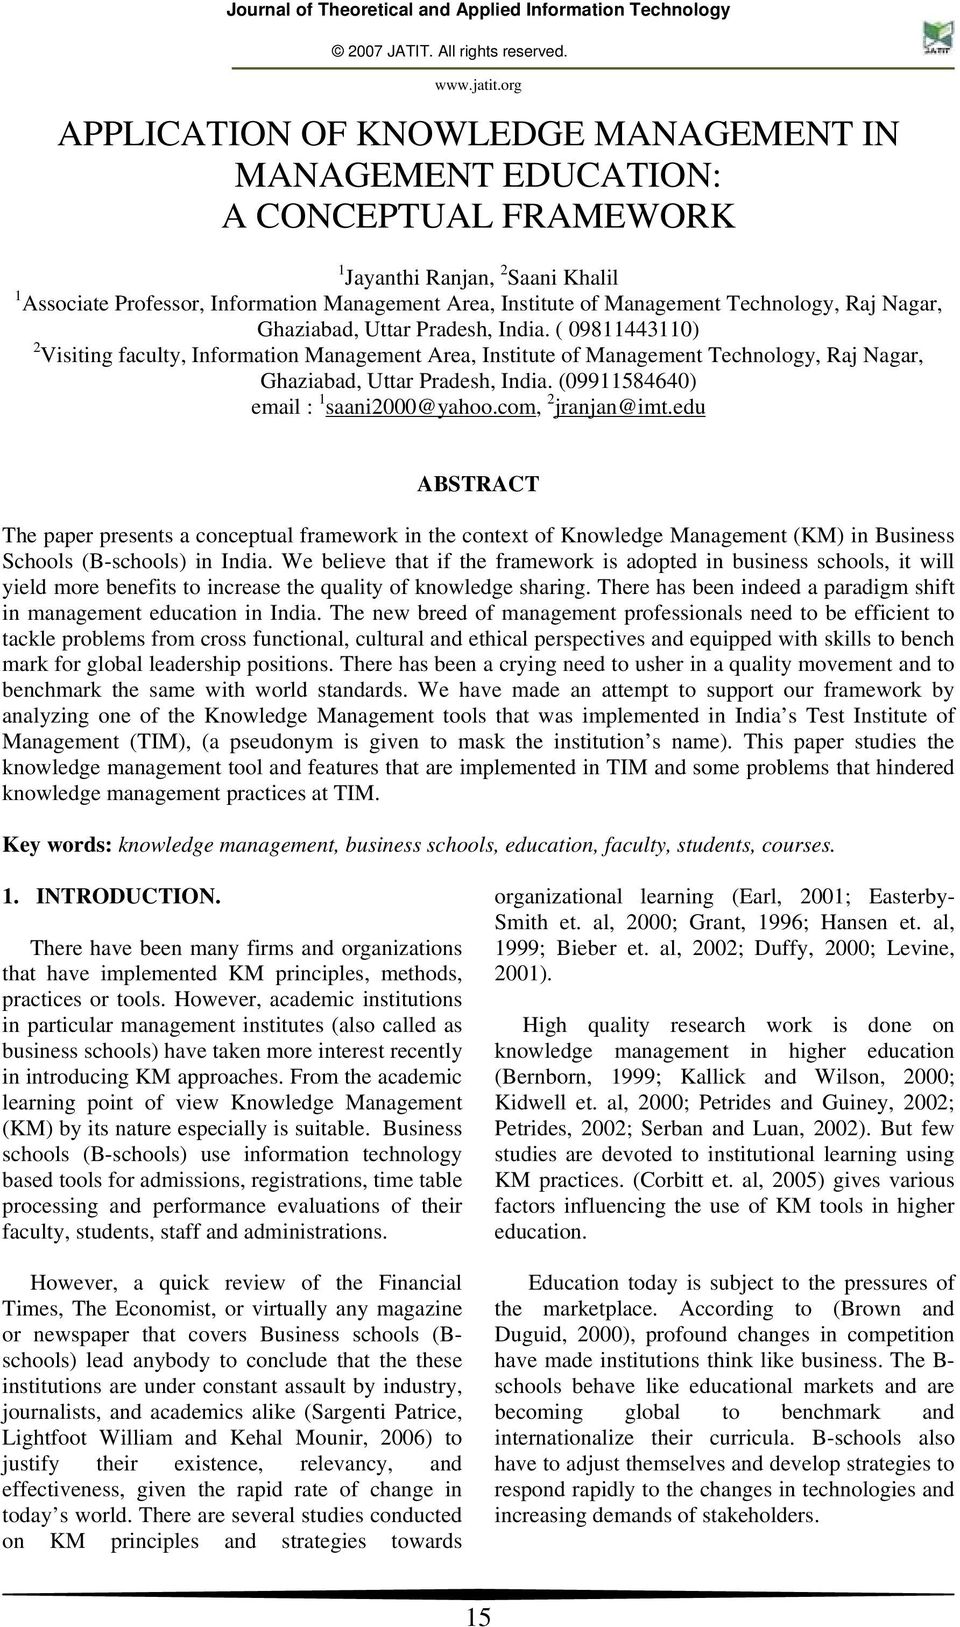 (09911584640) email : 1 saani2000@yahoo.com, 2 jranjan@imt.edu ABSTRACT The paper presents a conceptual framework in the context of Knowledge Management (KM) in Business Schools (B-schools) in India.